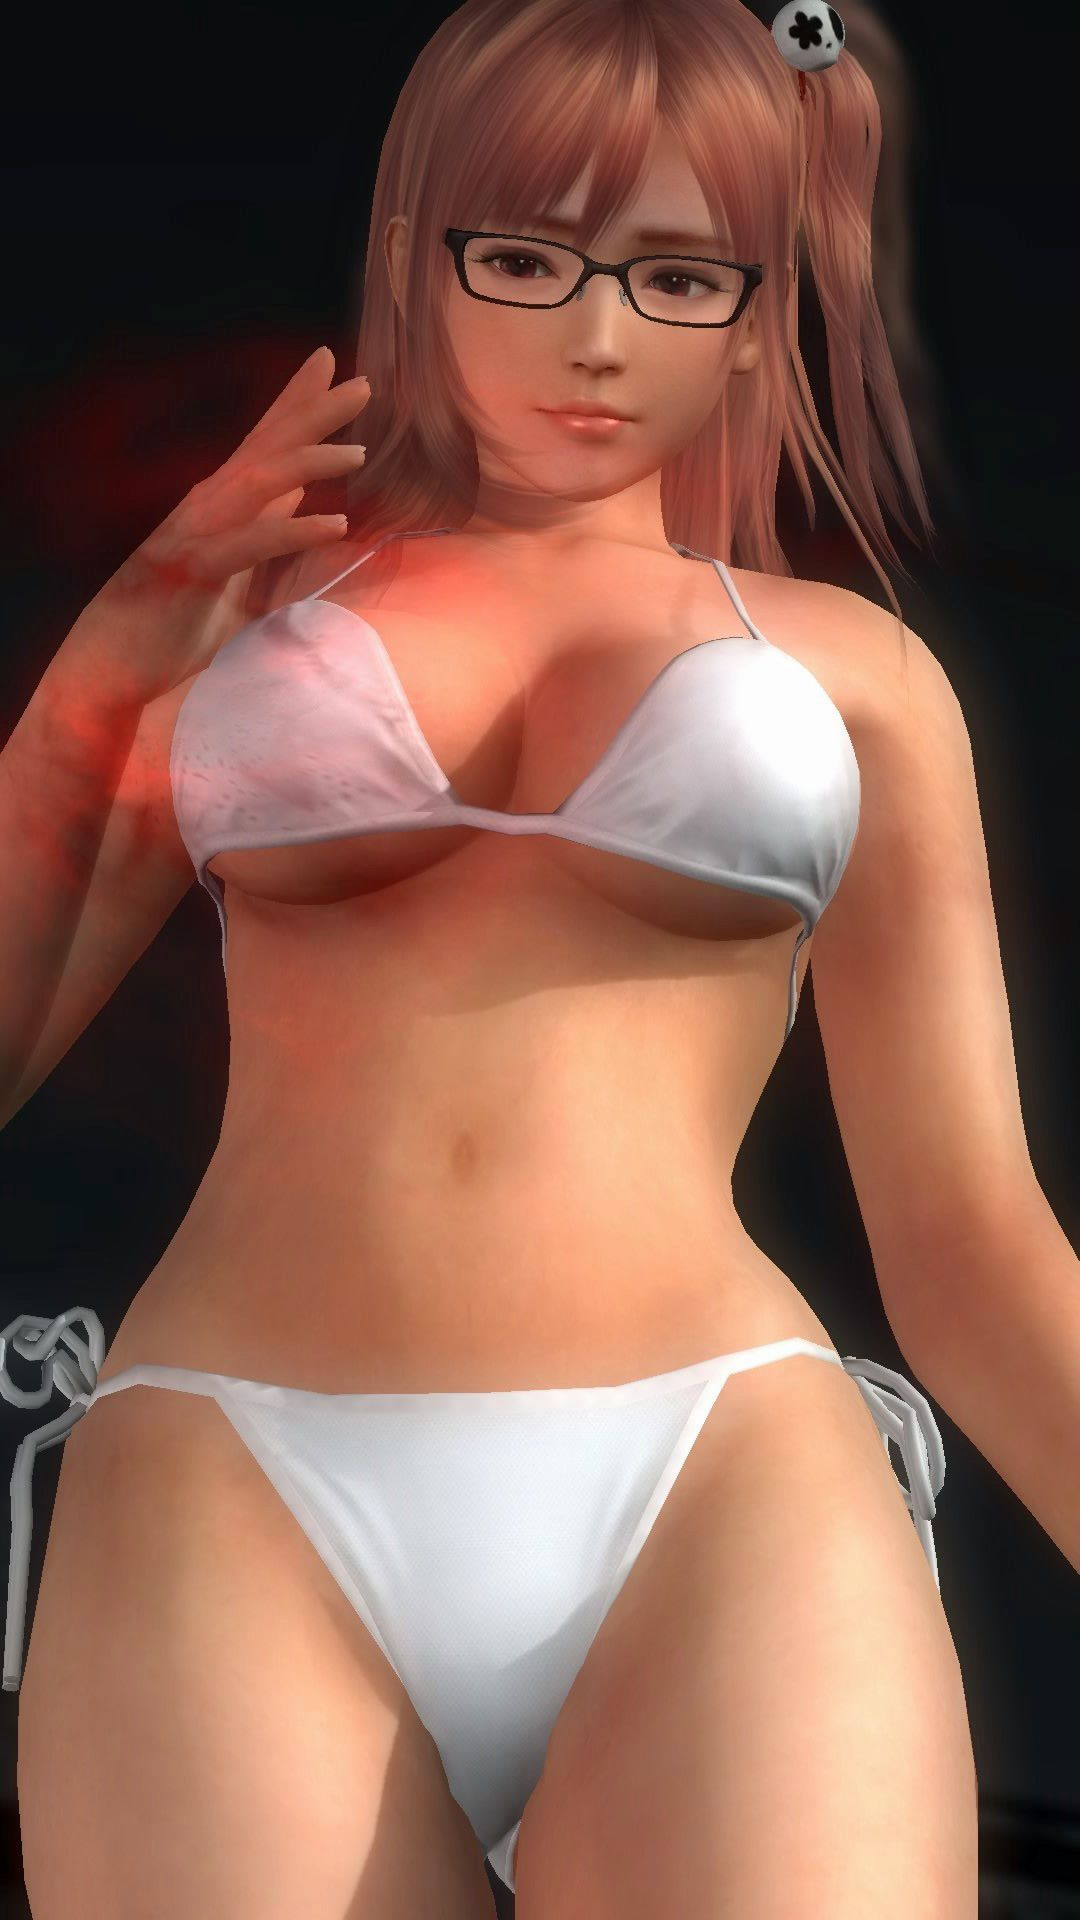 yasushi rikitake Dead or Alive 5 Last Round Honoka SS3 by takebon999.deviantart.com on @